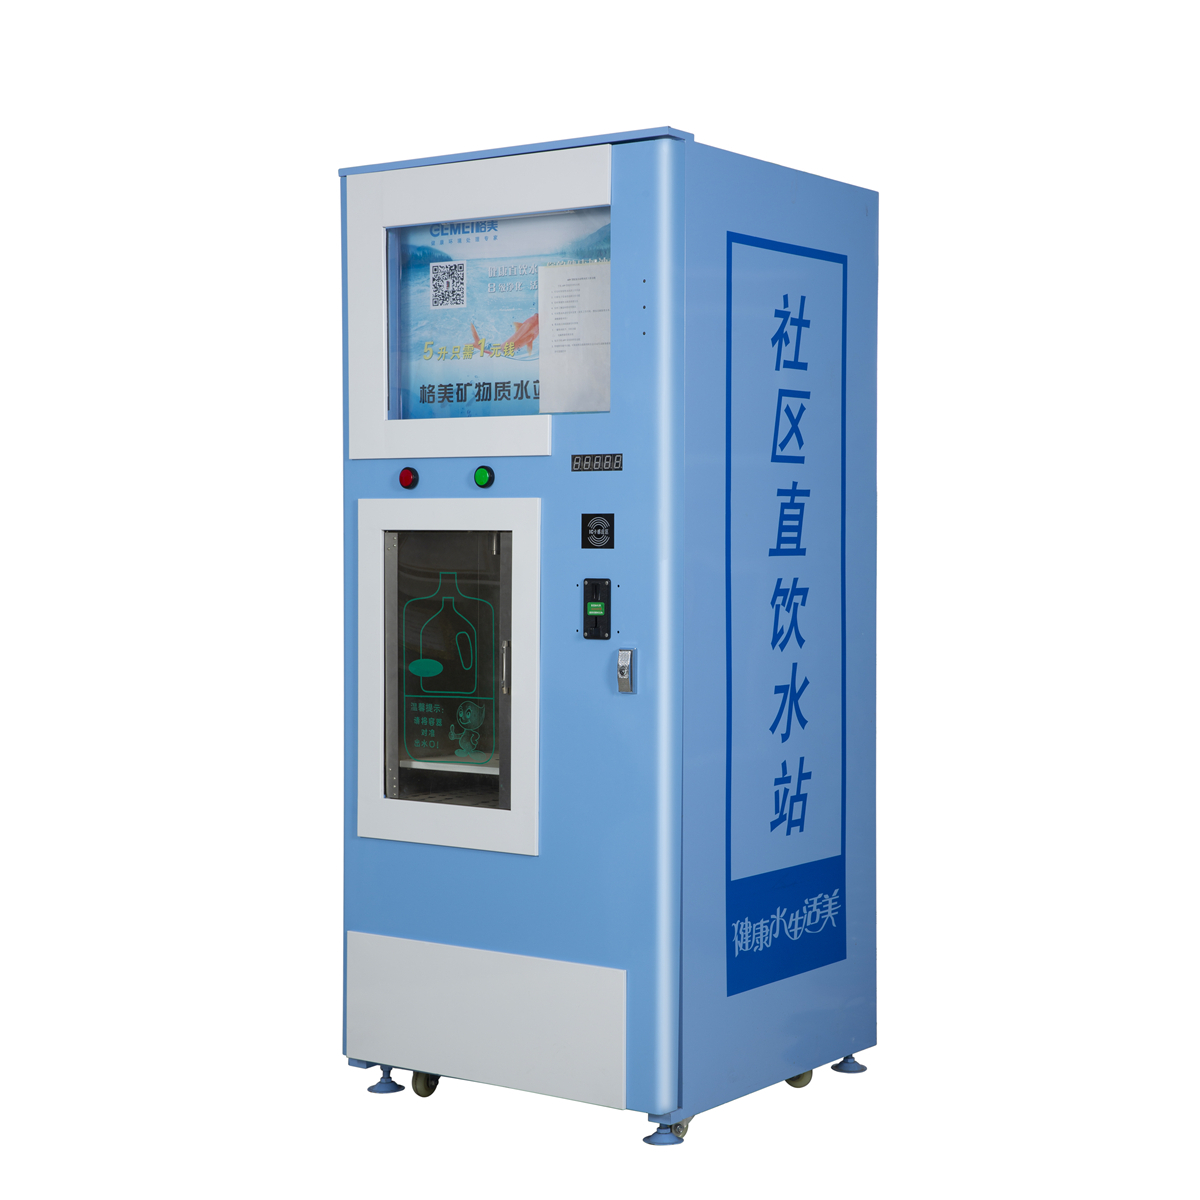 400G/800G/1200G RO water vending machine RO-400G